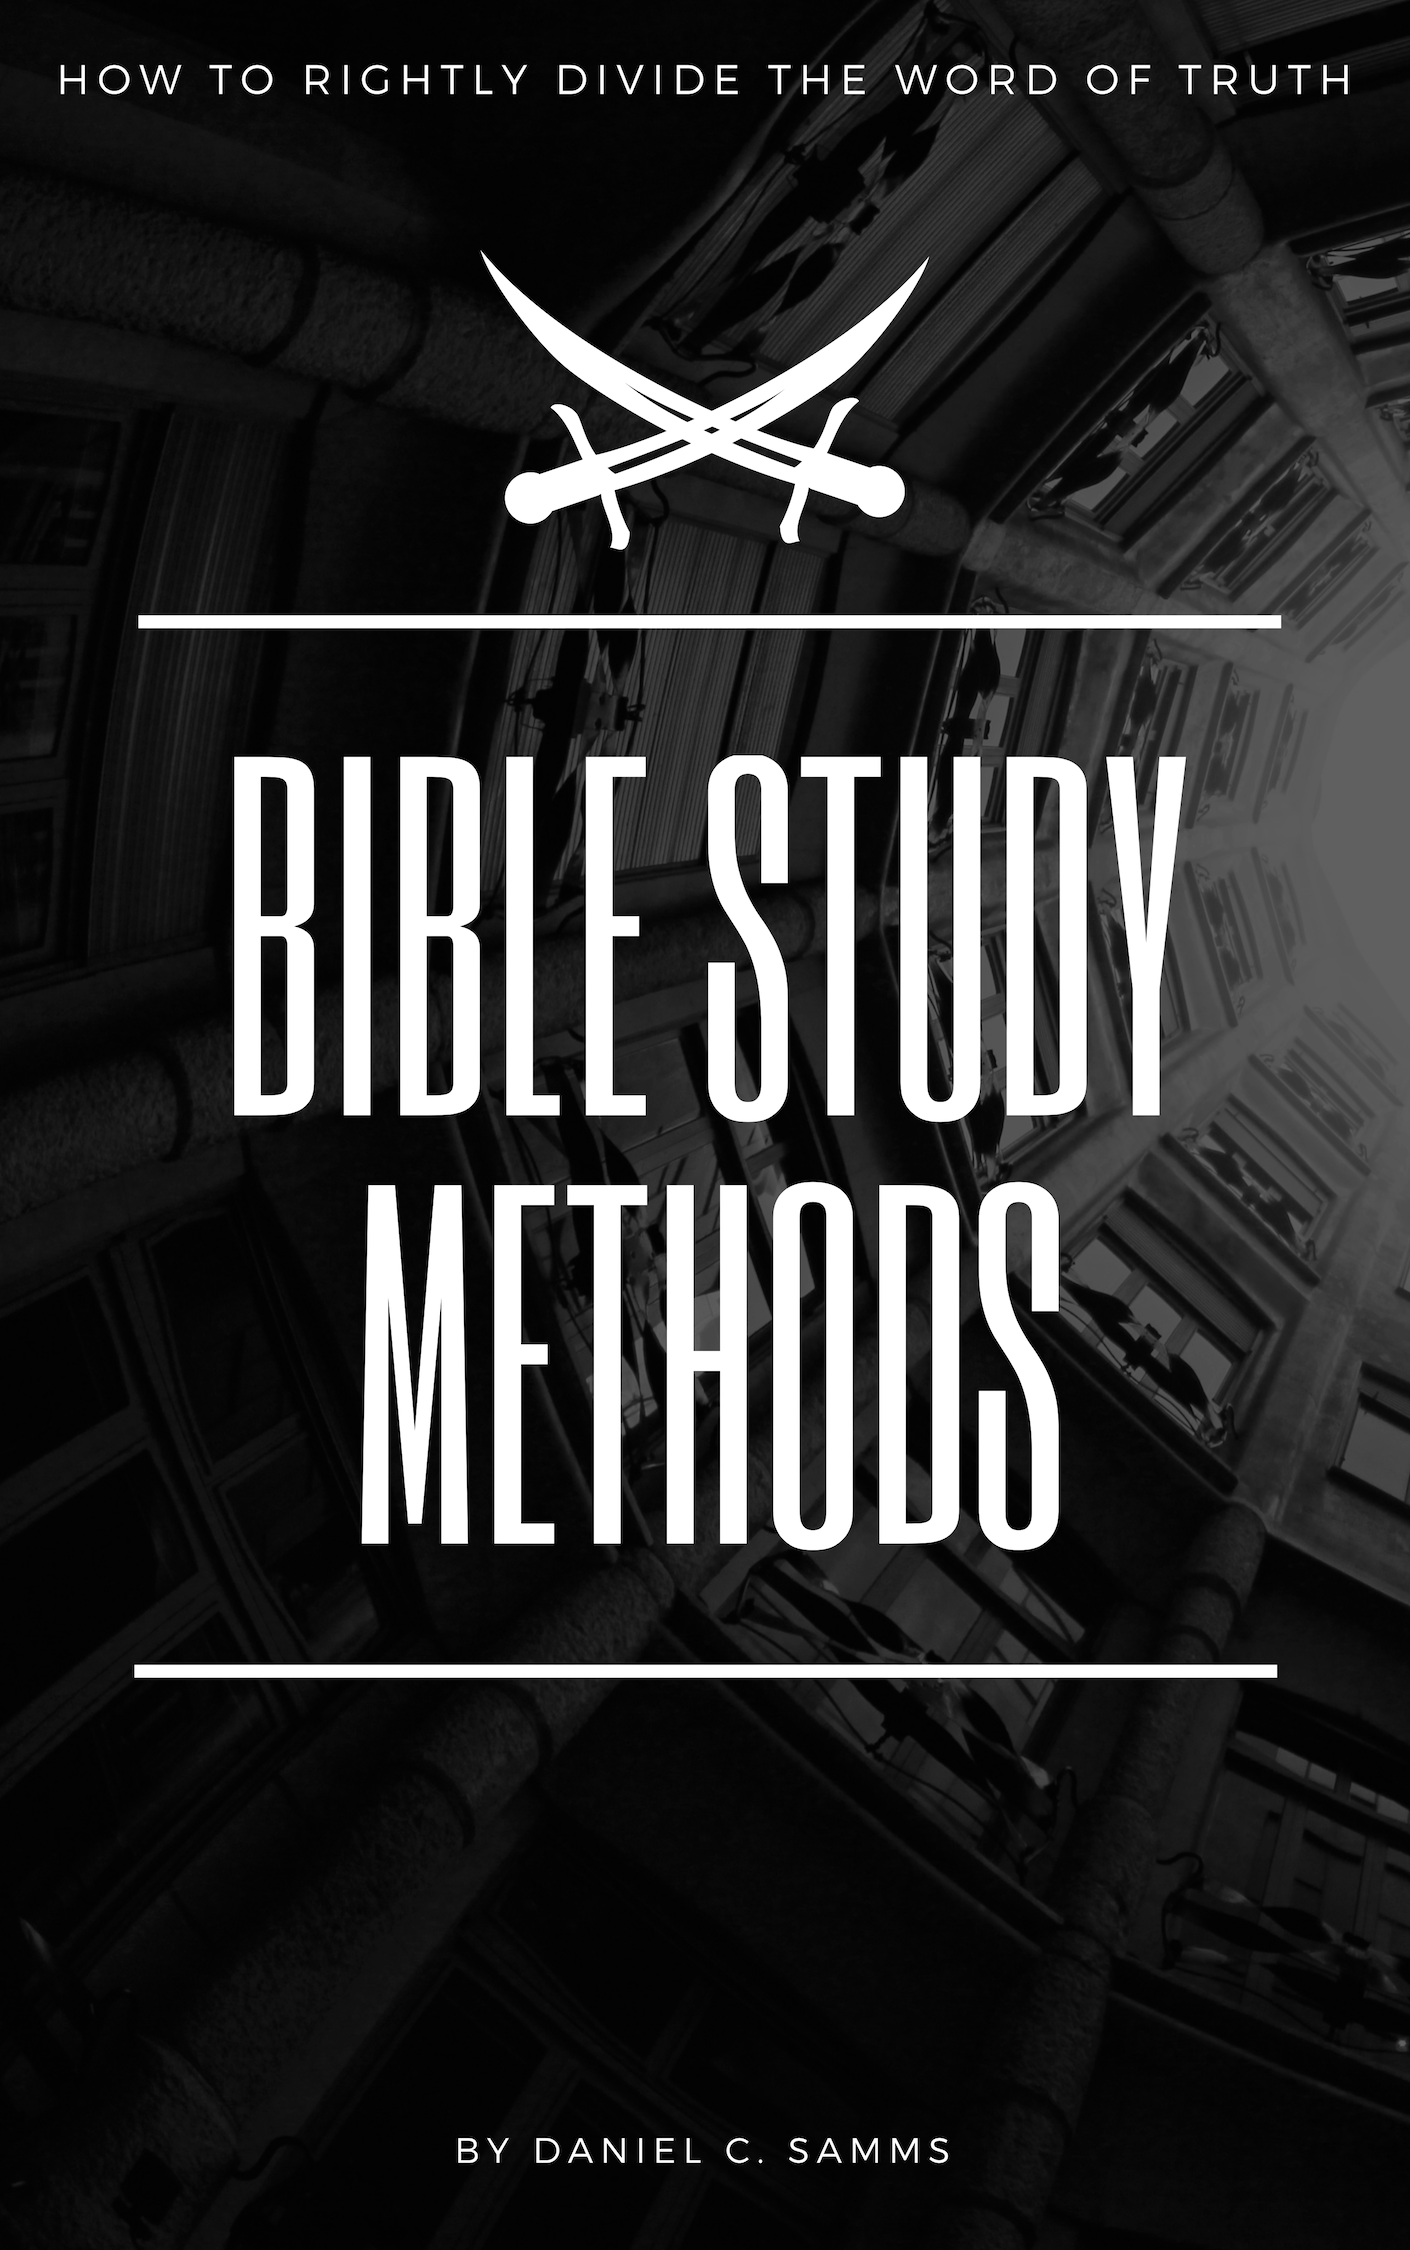 Bible Study Methods.png